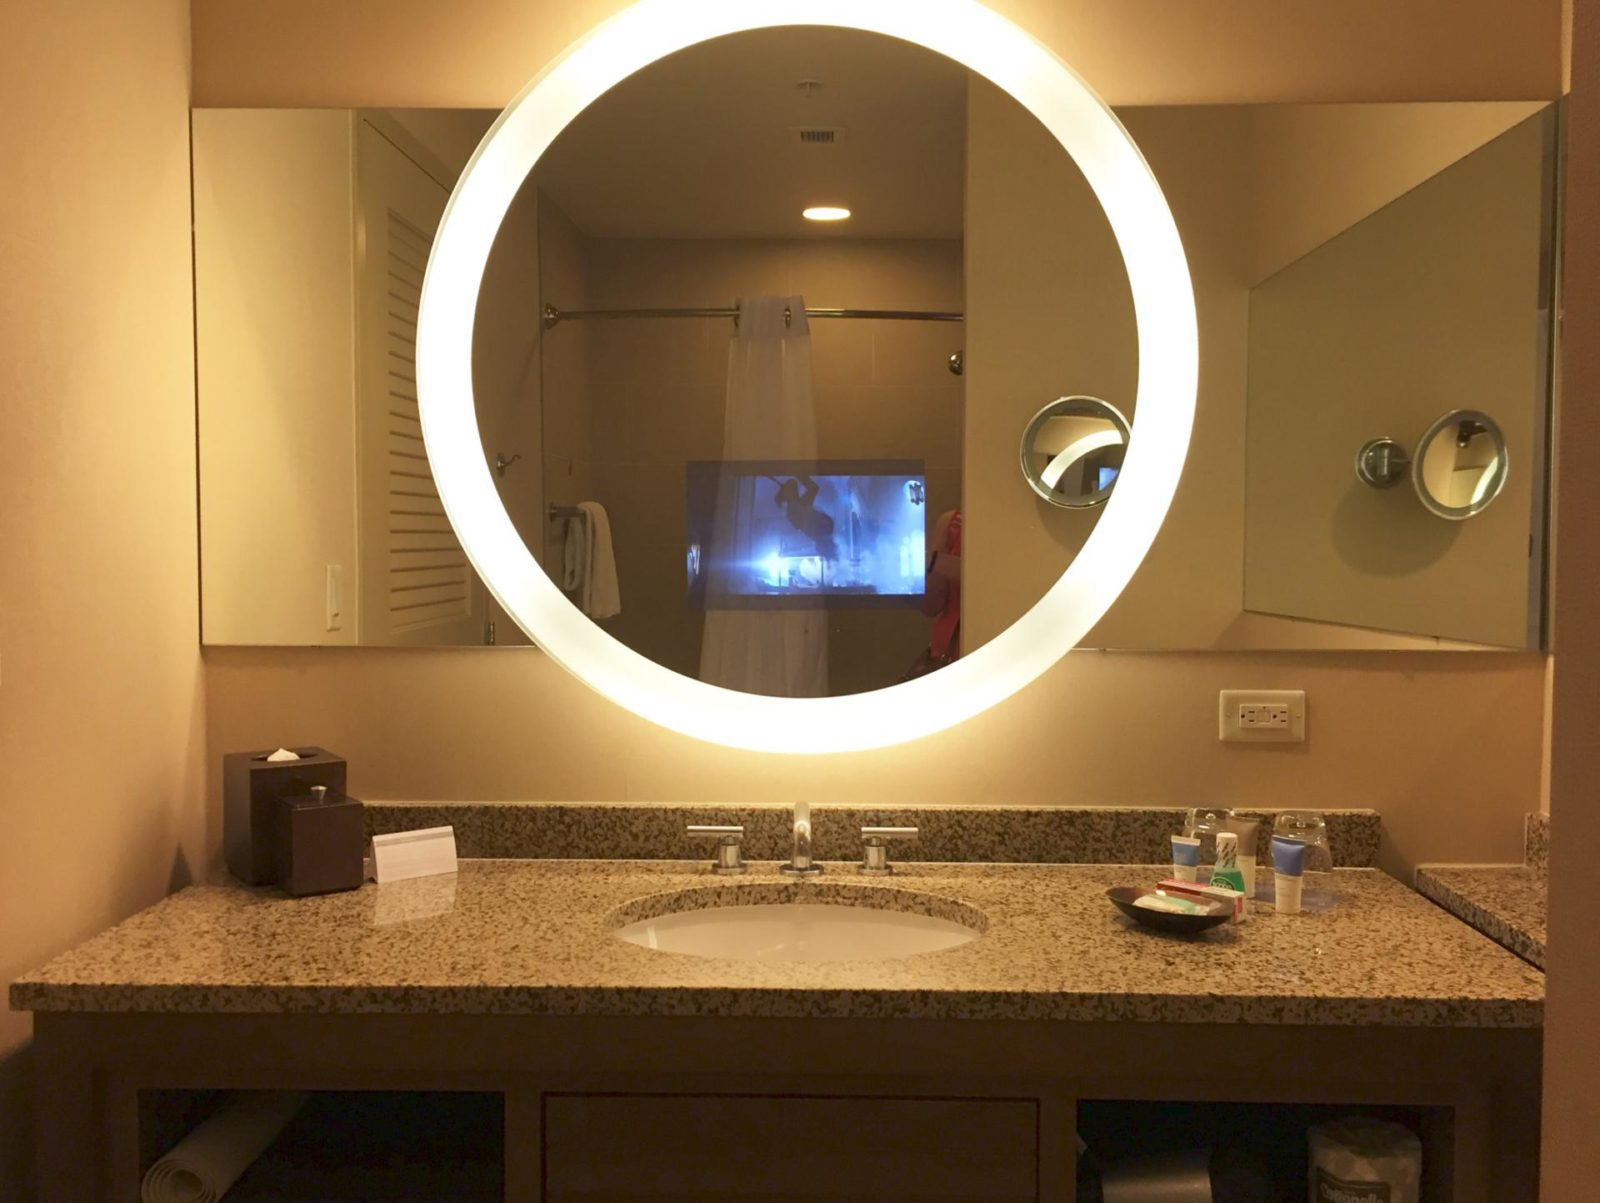 Bathroom Mirrors With Tv Built In 2 Nights At The Hyatt Regency Orlando Small Towns And City